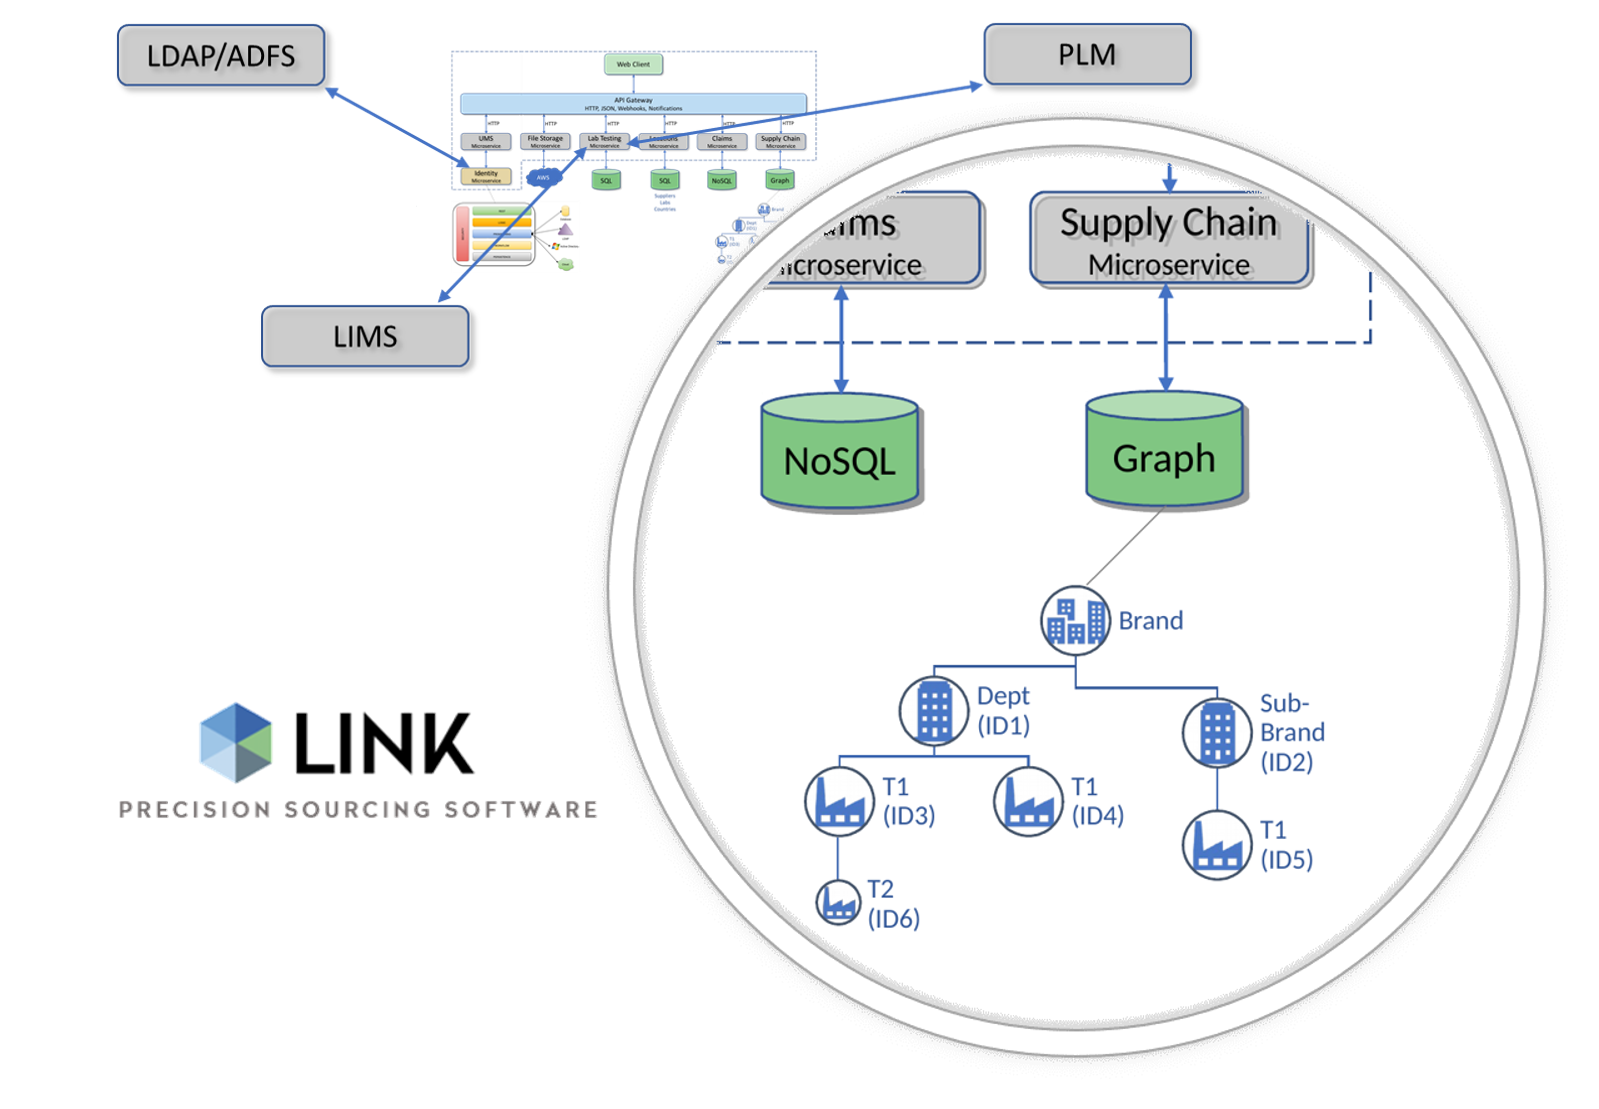 LINK Services Connectors to Enterprise Applications